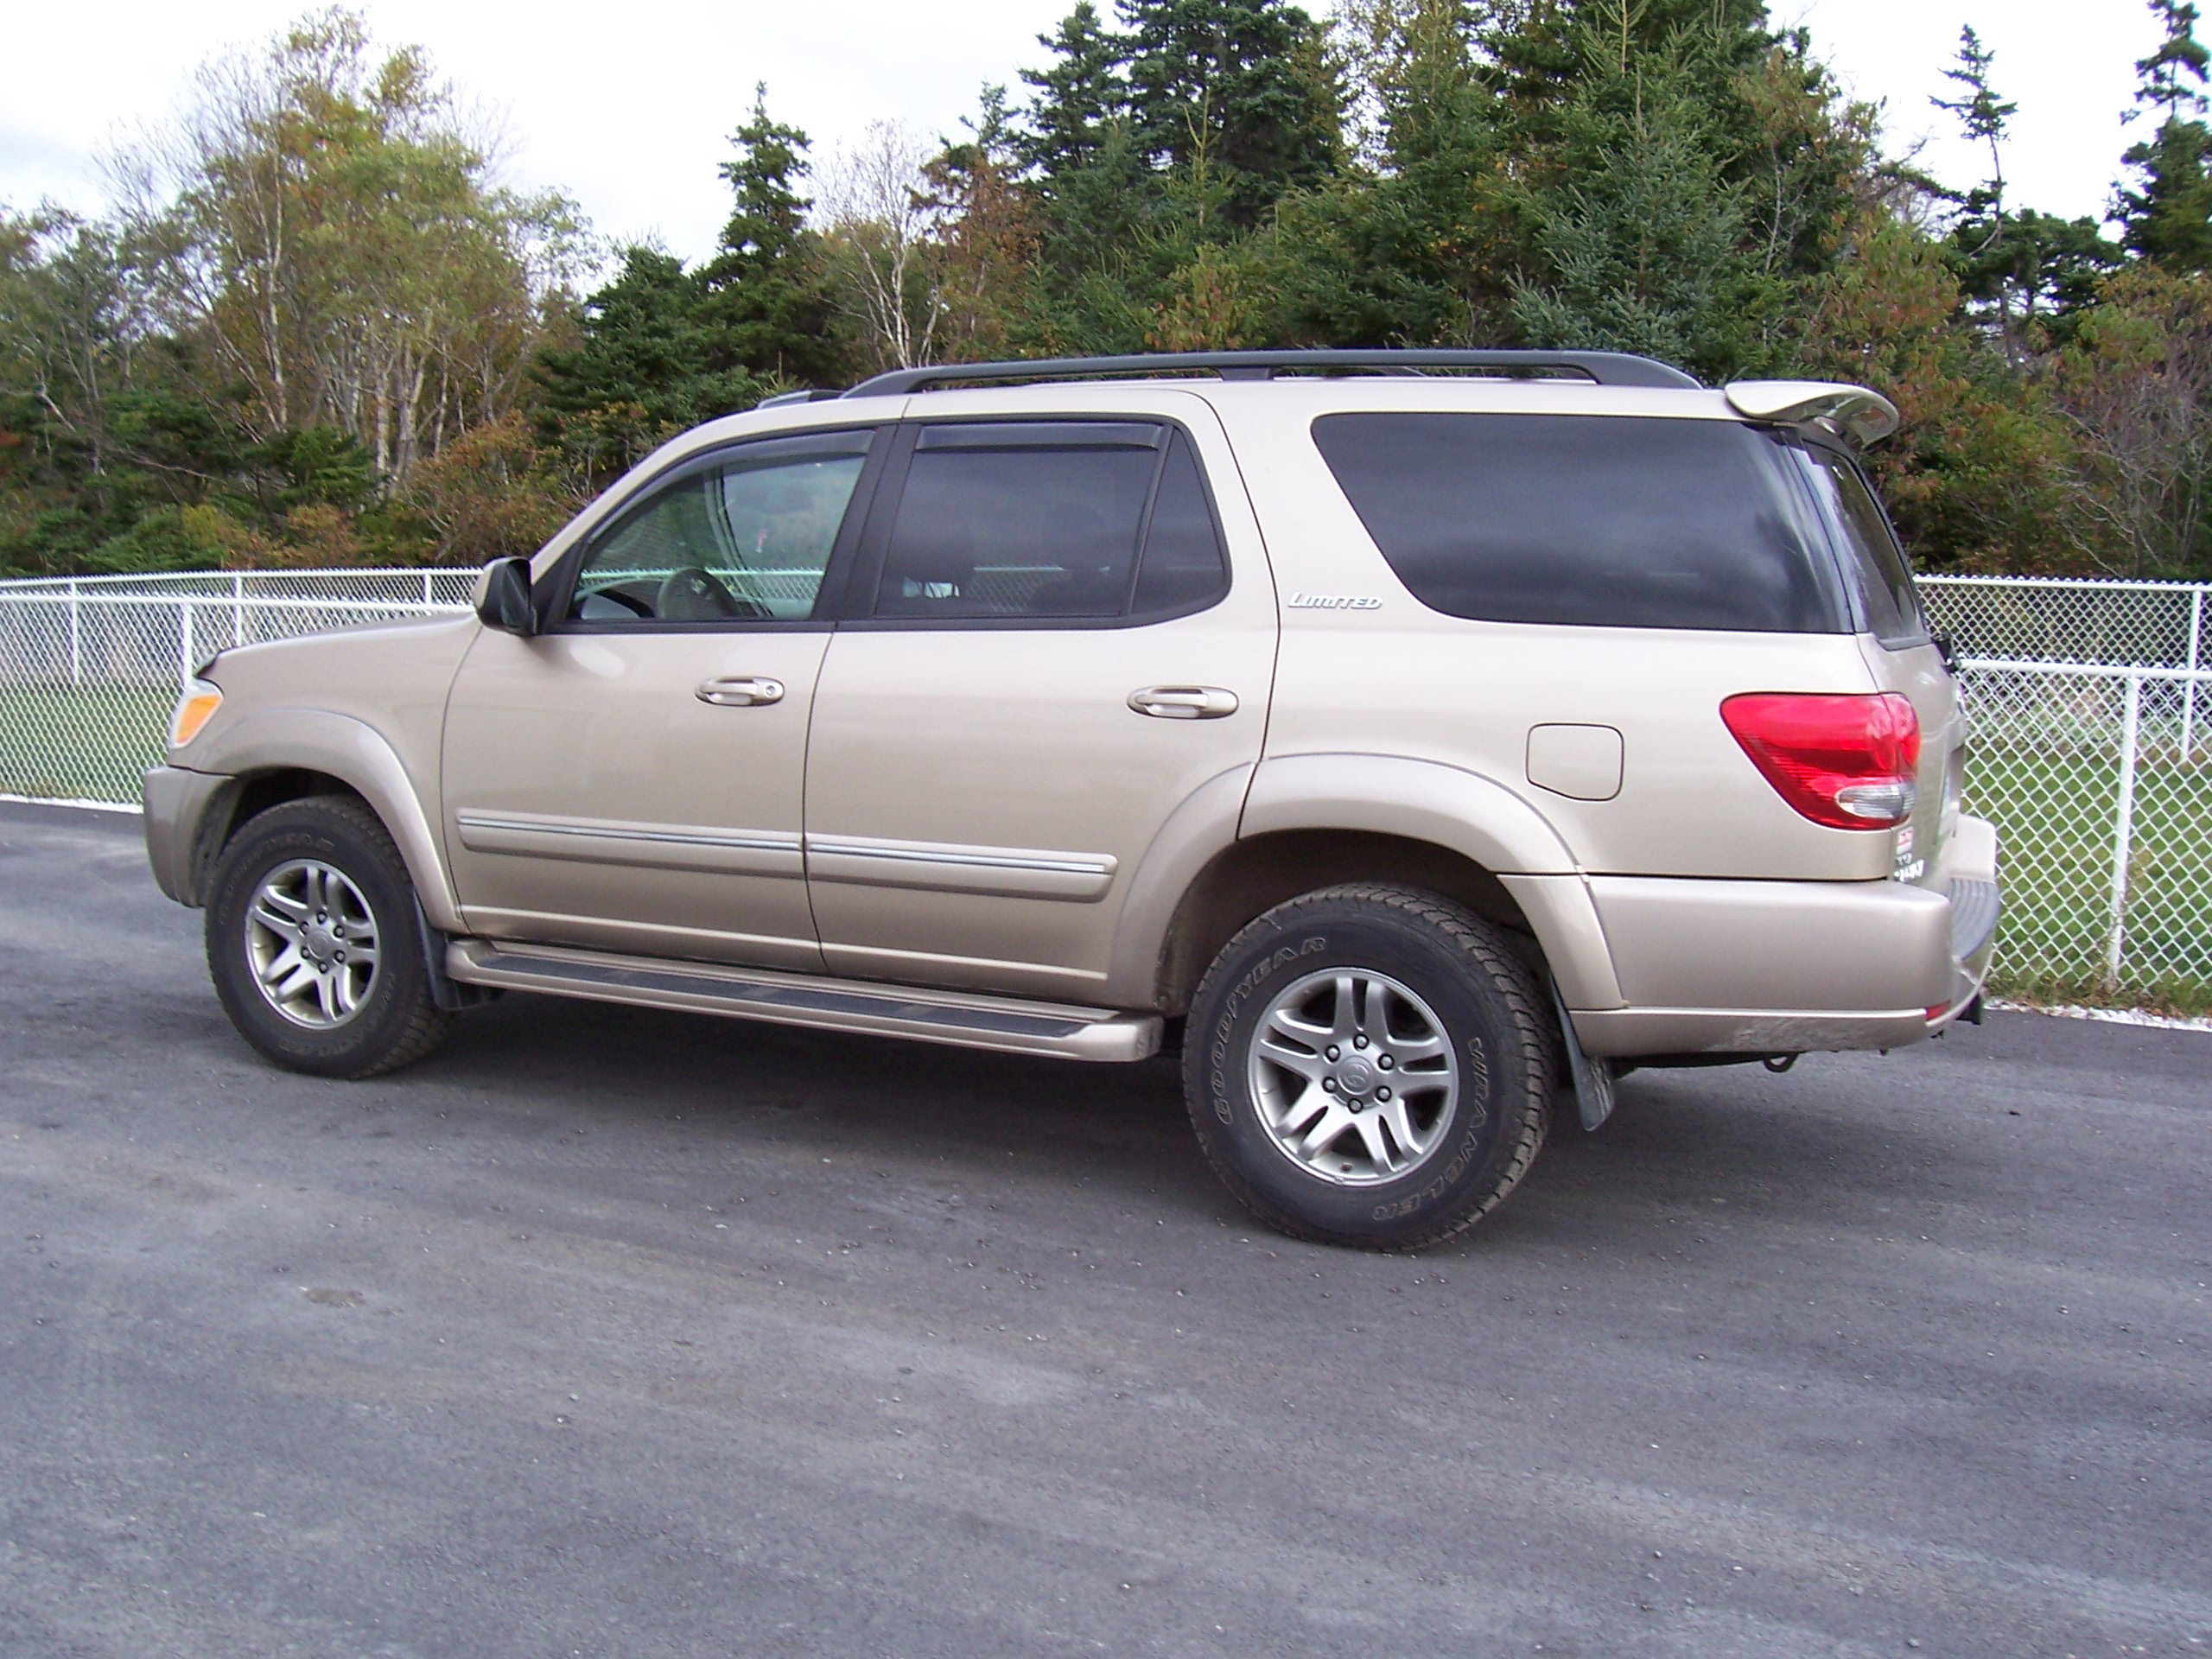 Lovely File:2005 Toyota Sequoia Limited